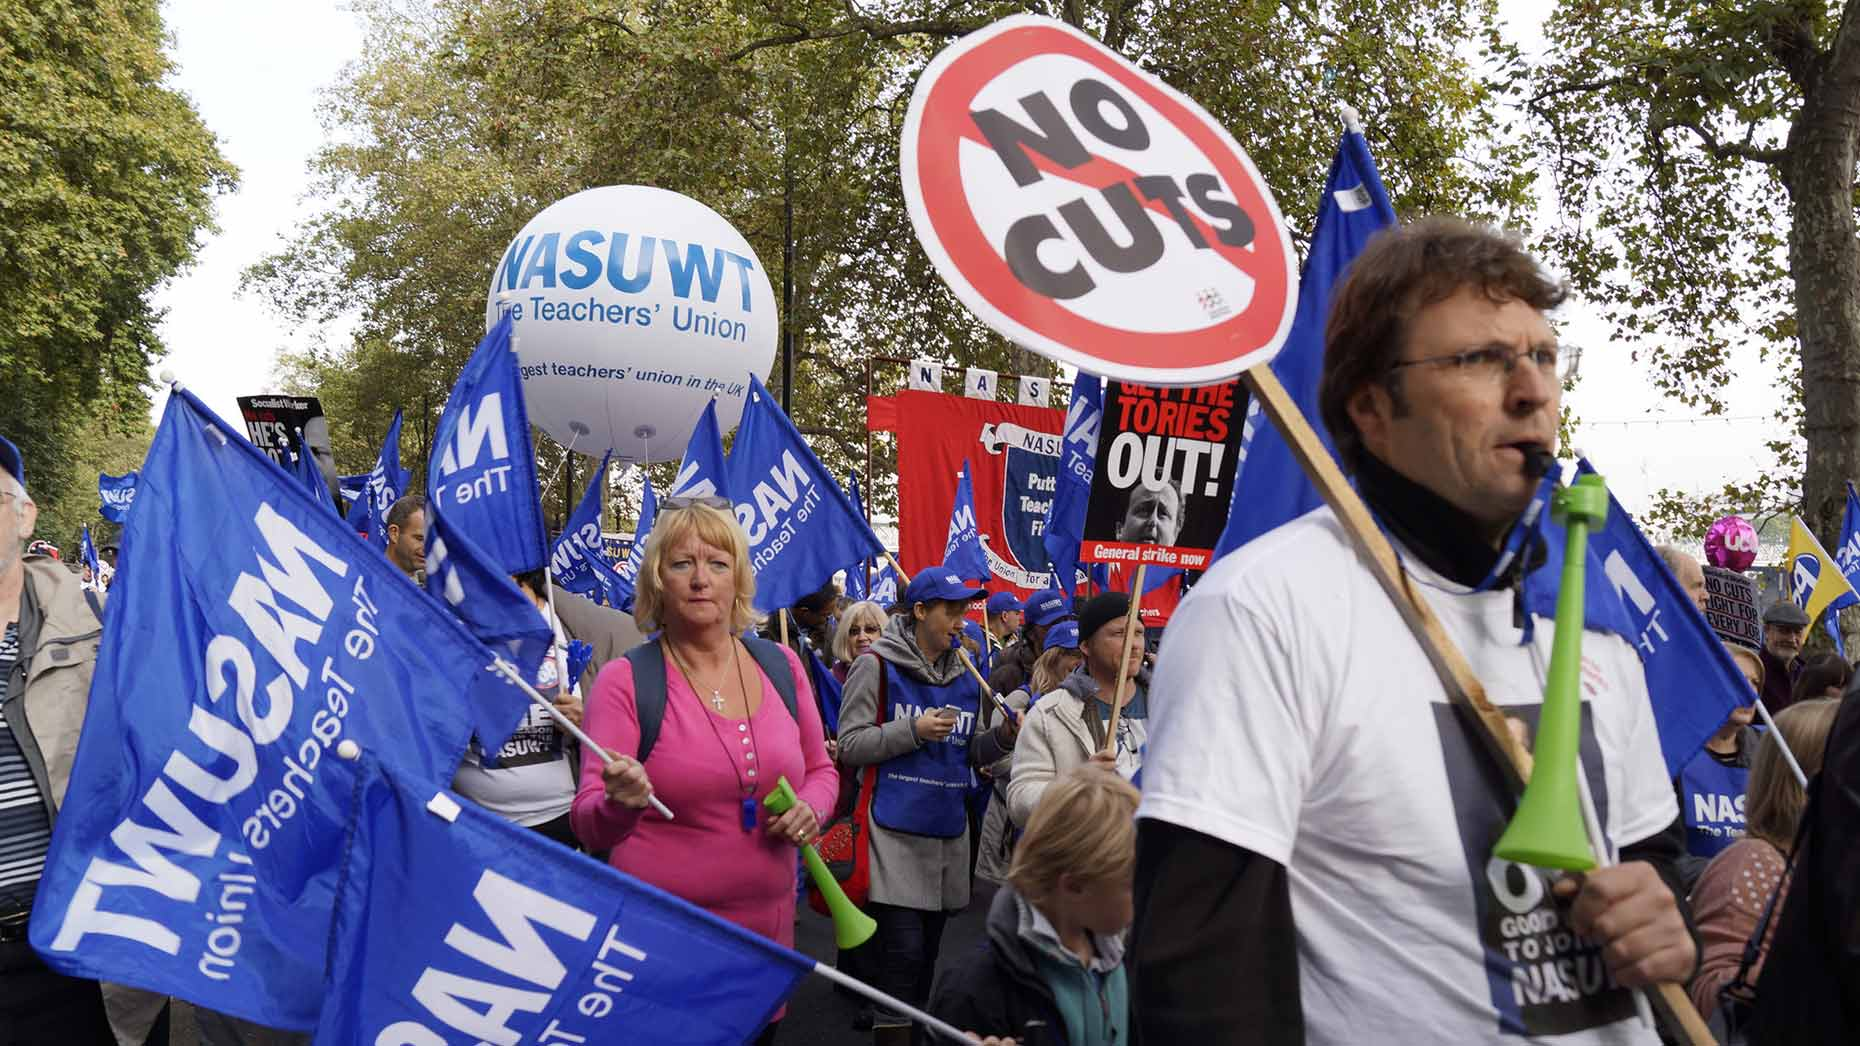 Teacher Strikes: Right or Wrong?